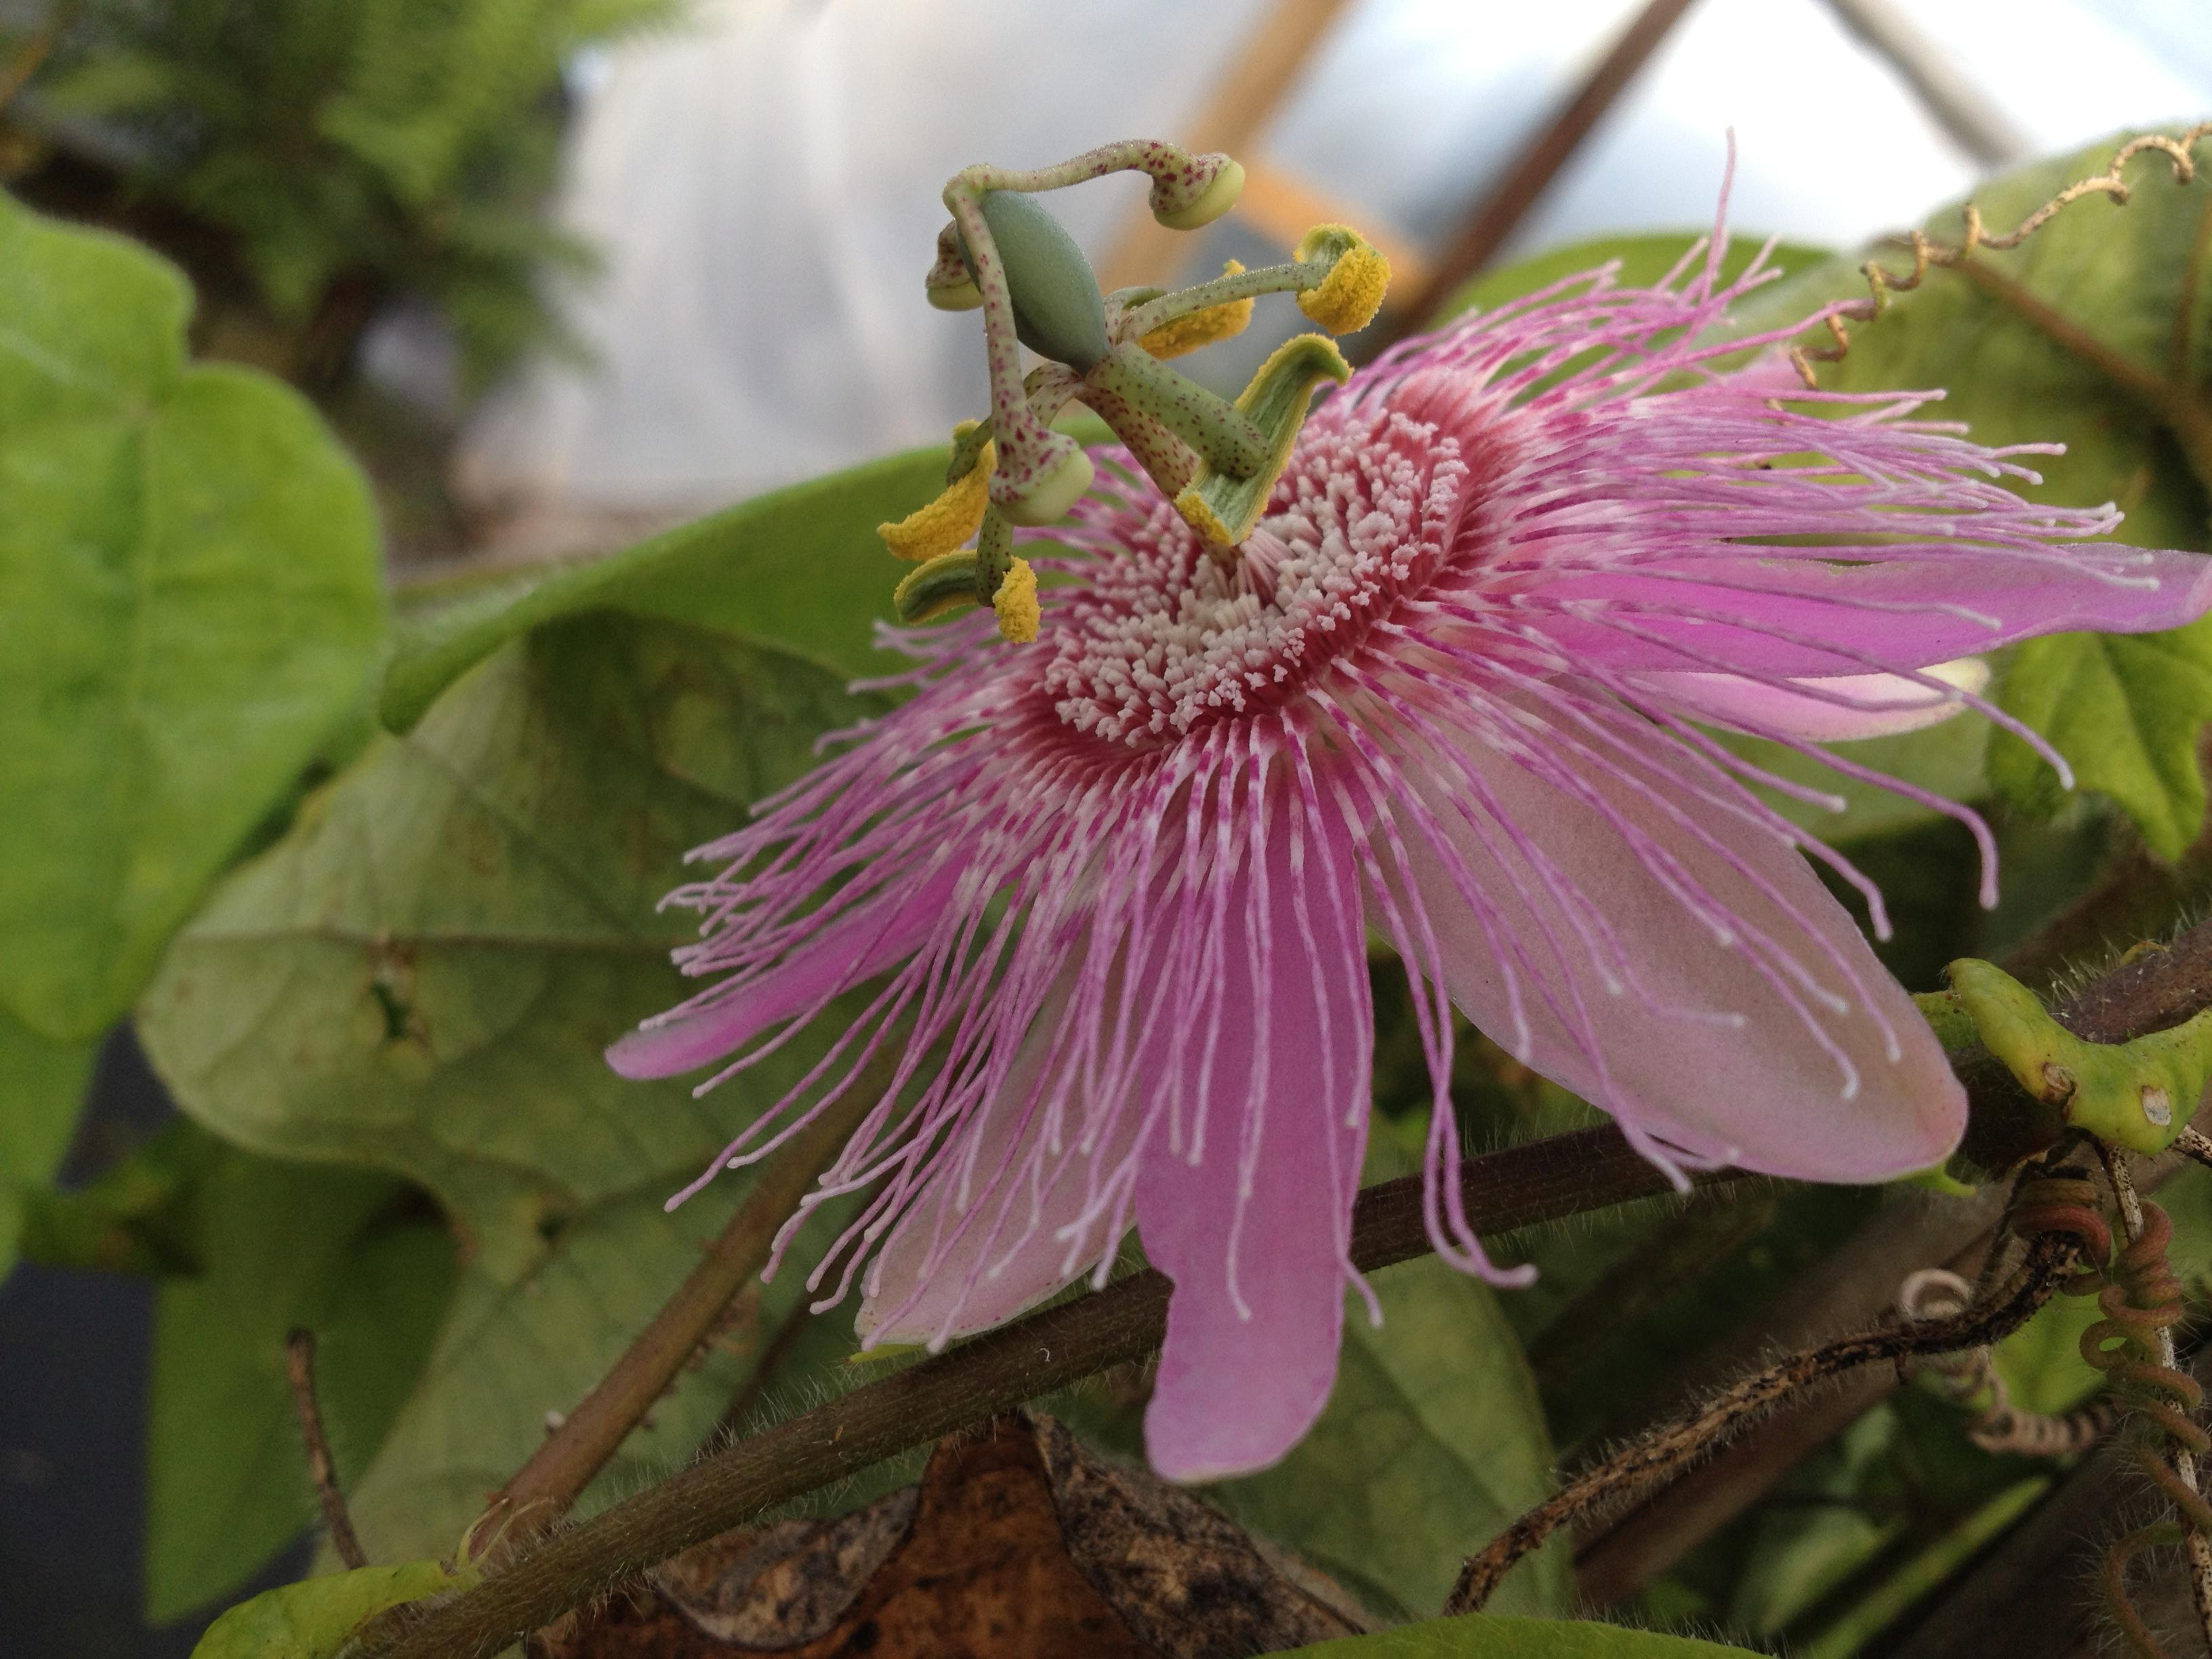 PINK NEPHRODES Passiflora Fragrant Passion Flower Vine Live Plant Unusual Bloom Attracts Butterflies Starter Size 4 Inch PotEmeralds Tm - Click Image to Close